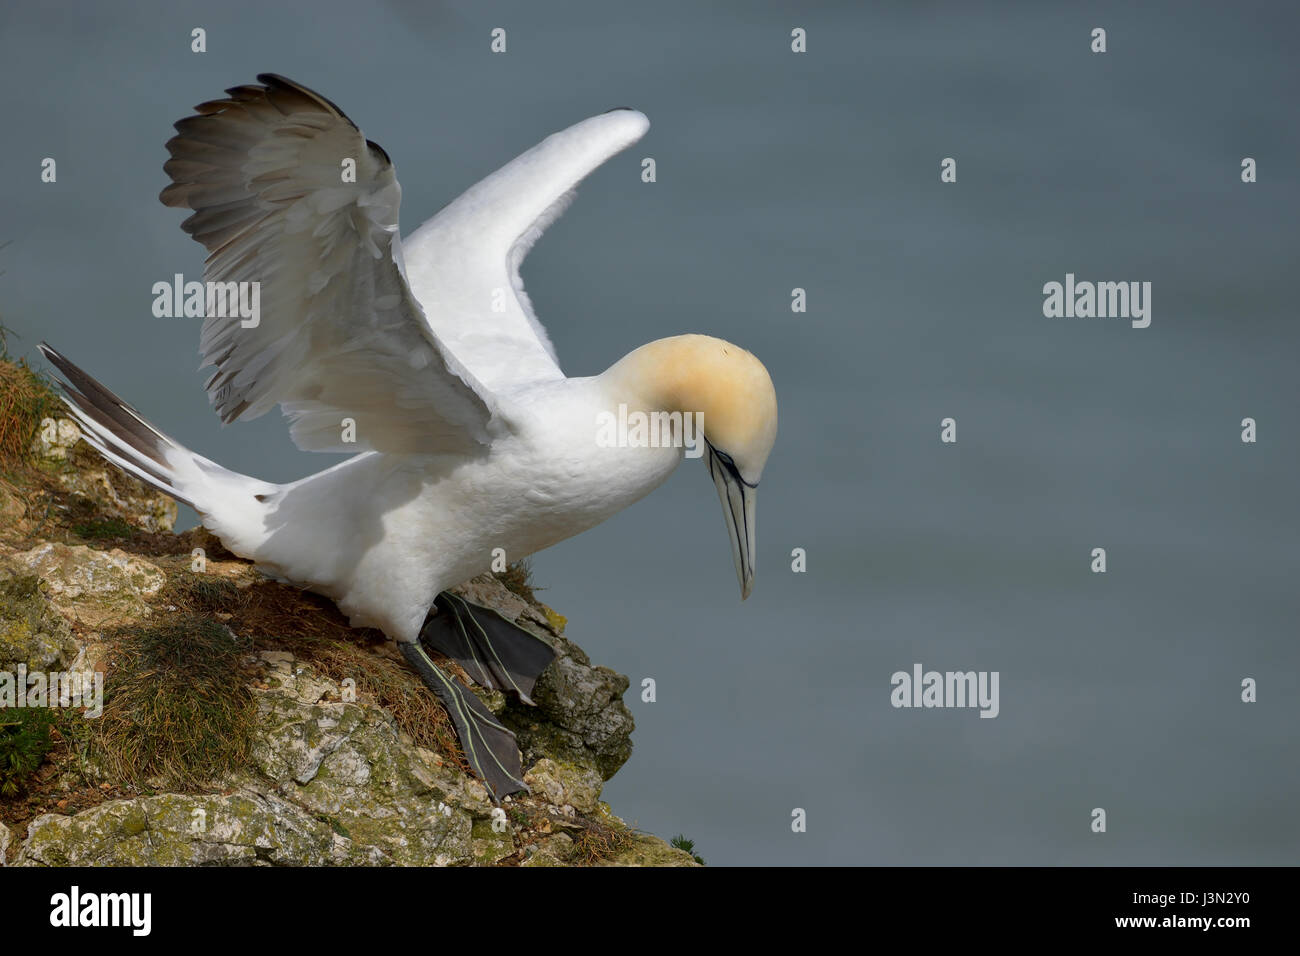 Gannet taking off - Stock Image